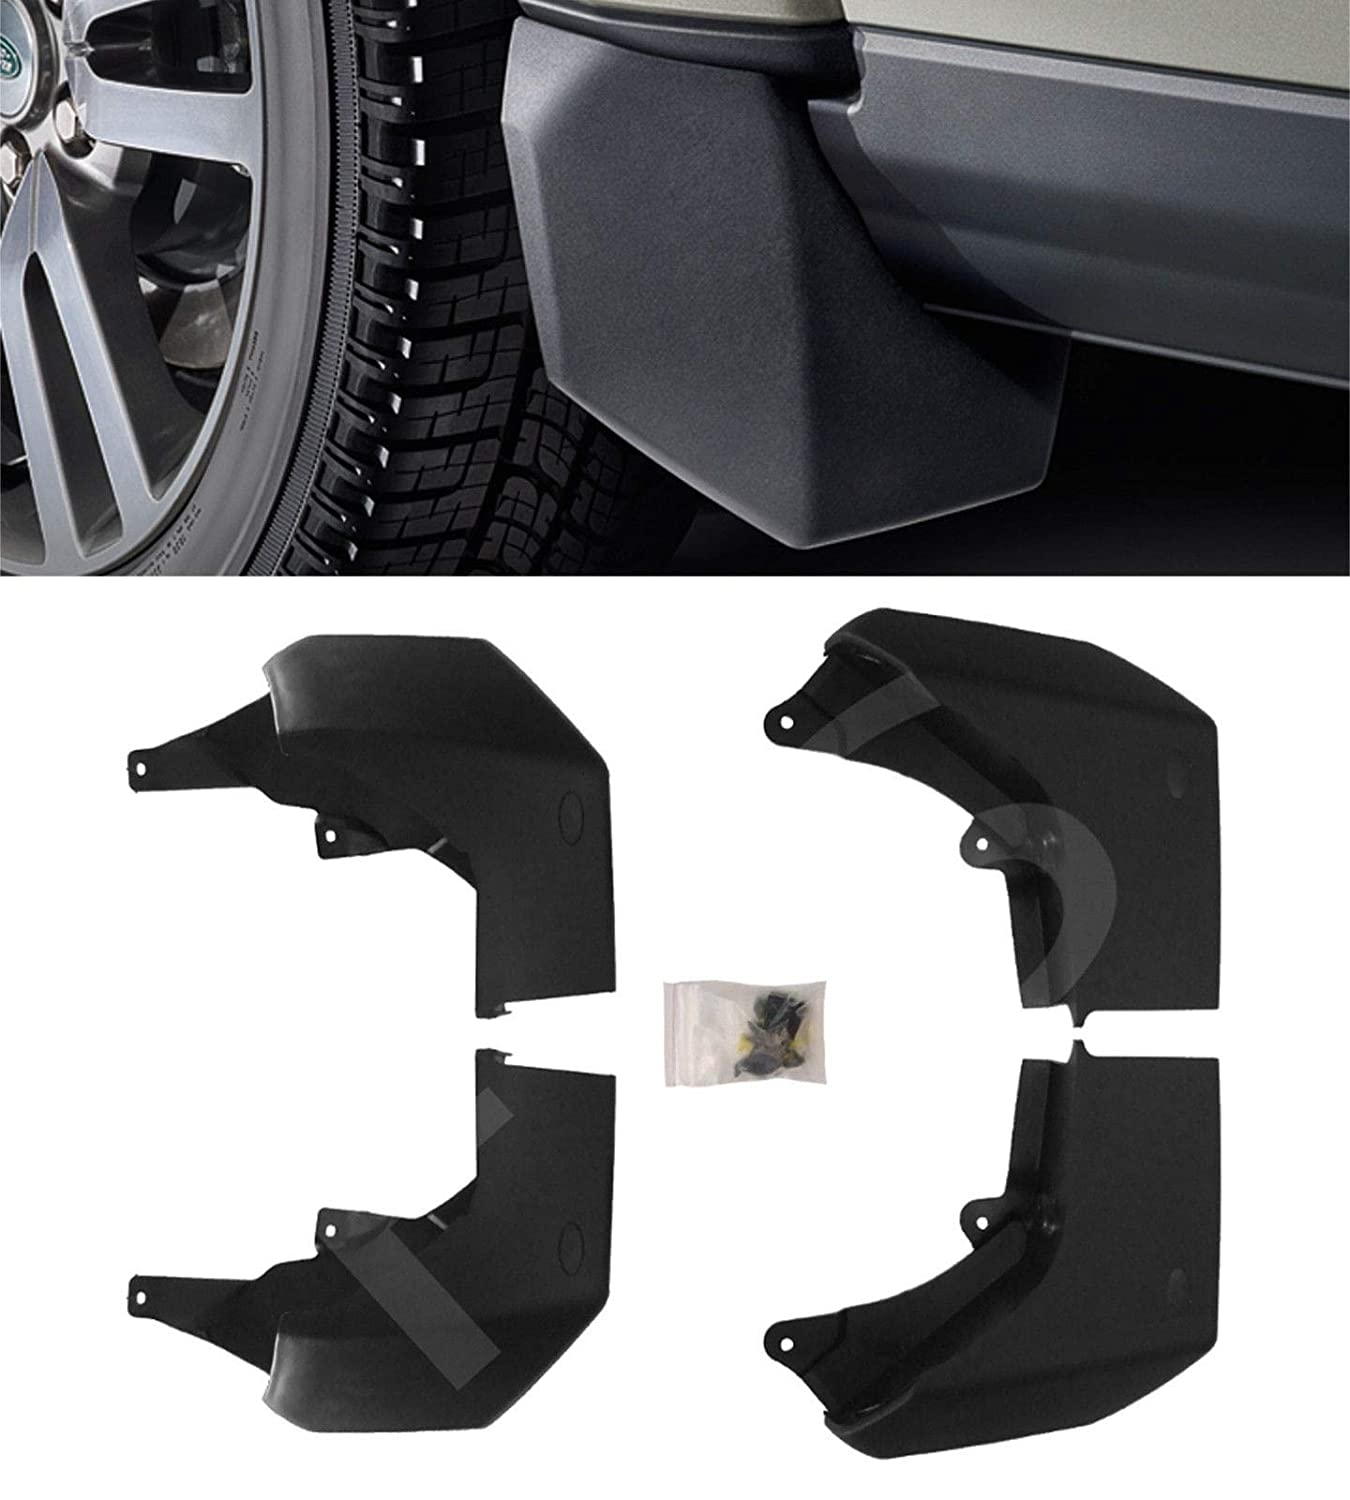 DISCOVERY 4 2010 FRONT /& REAR MUDFLAP SET MUD FLAPS KIT MUDGUARDS